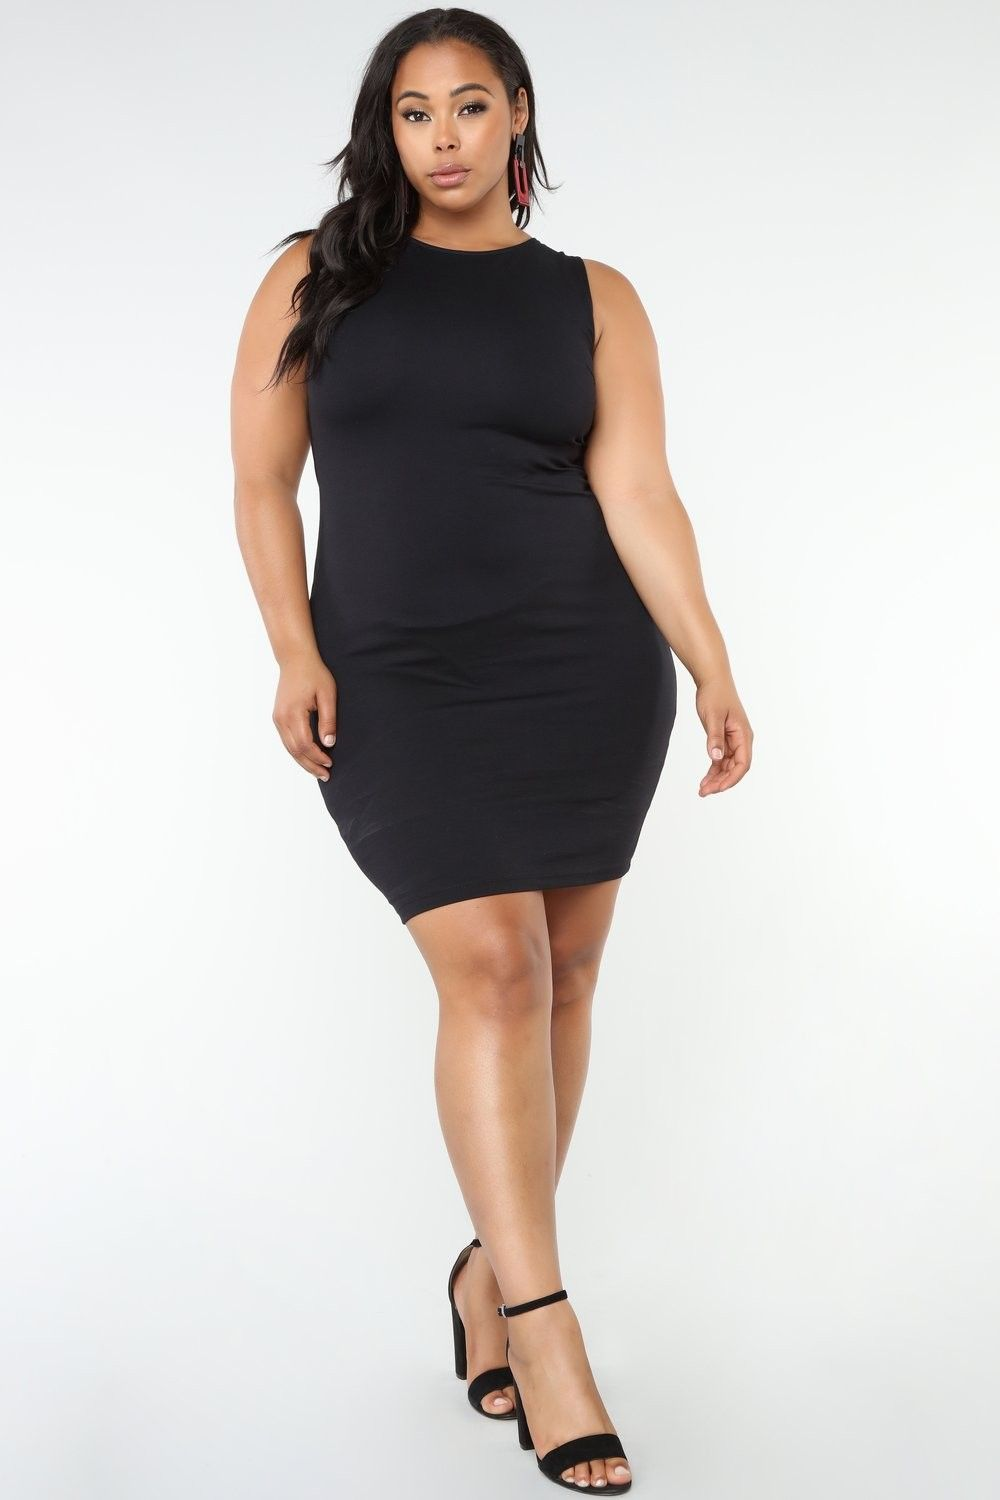 plus size not so simple chick dress - black $27.99 #fashion #ootd